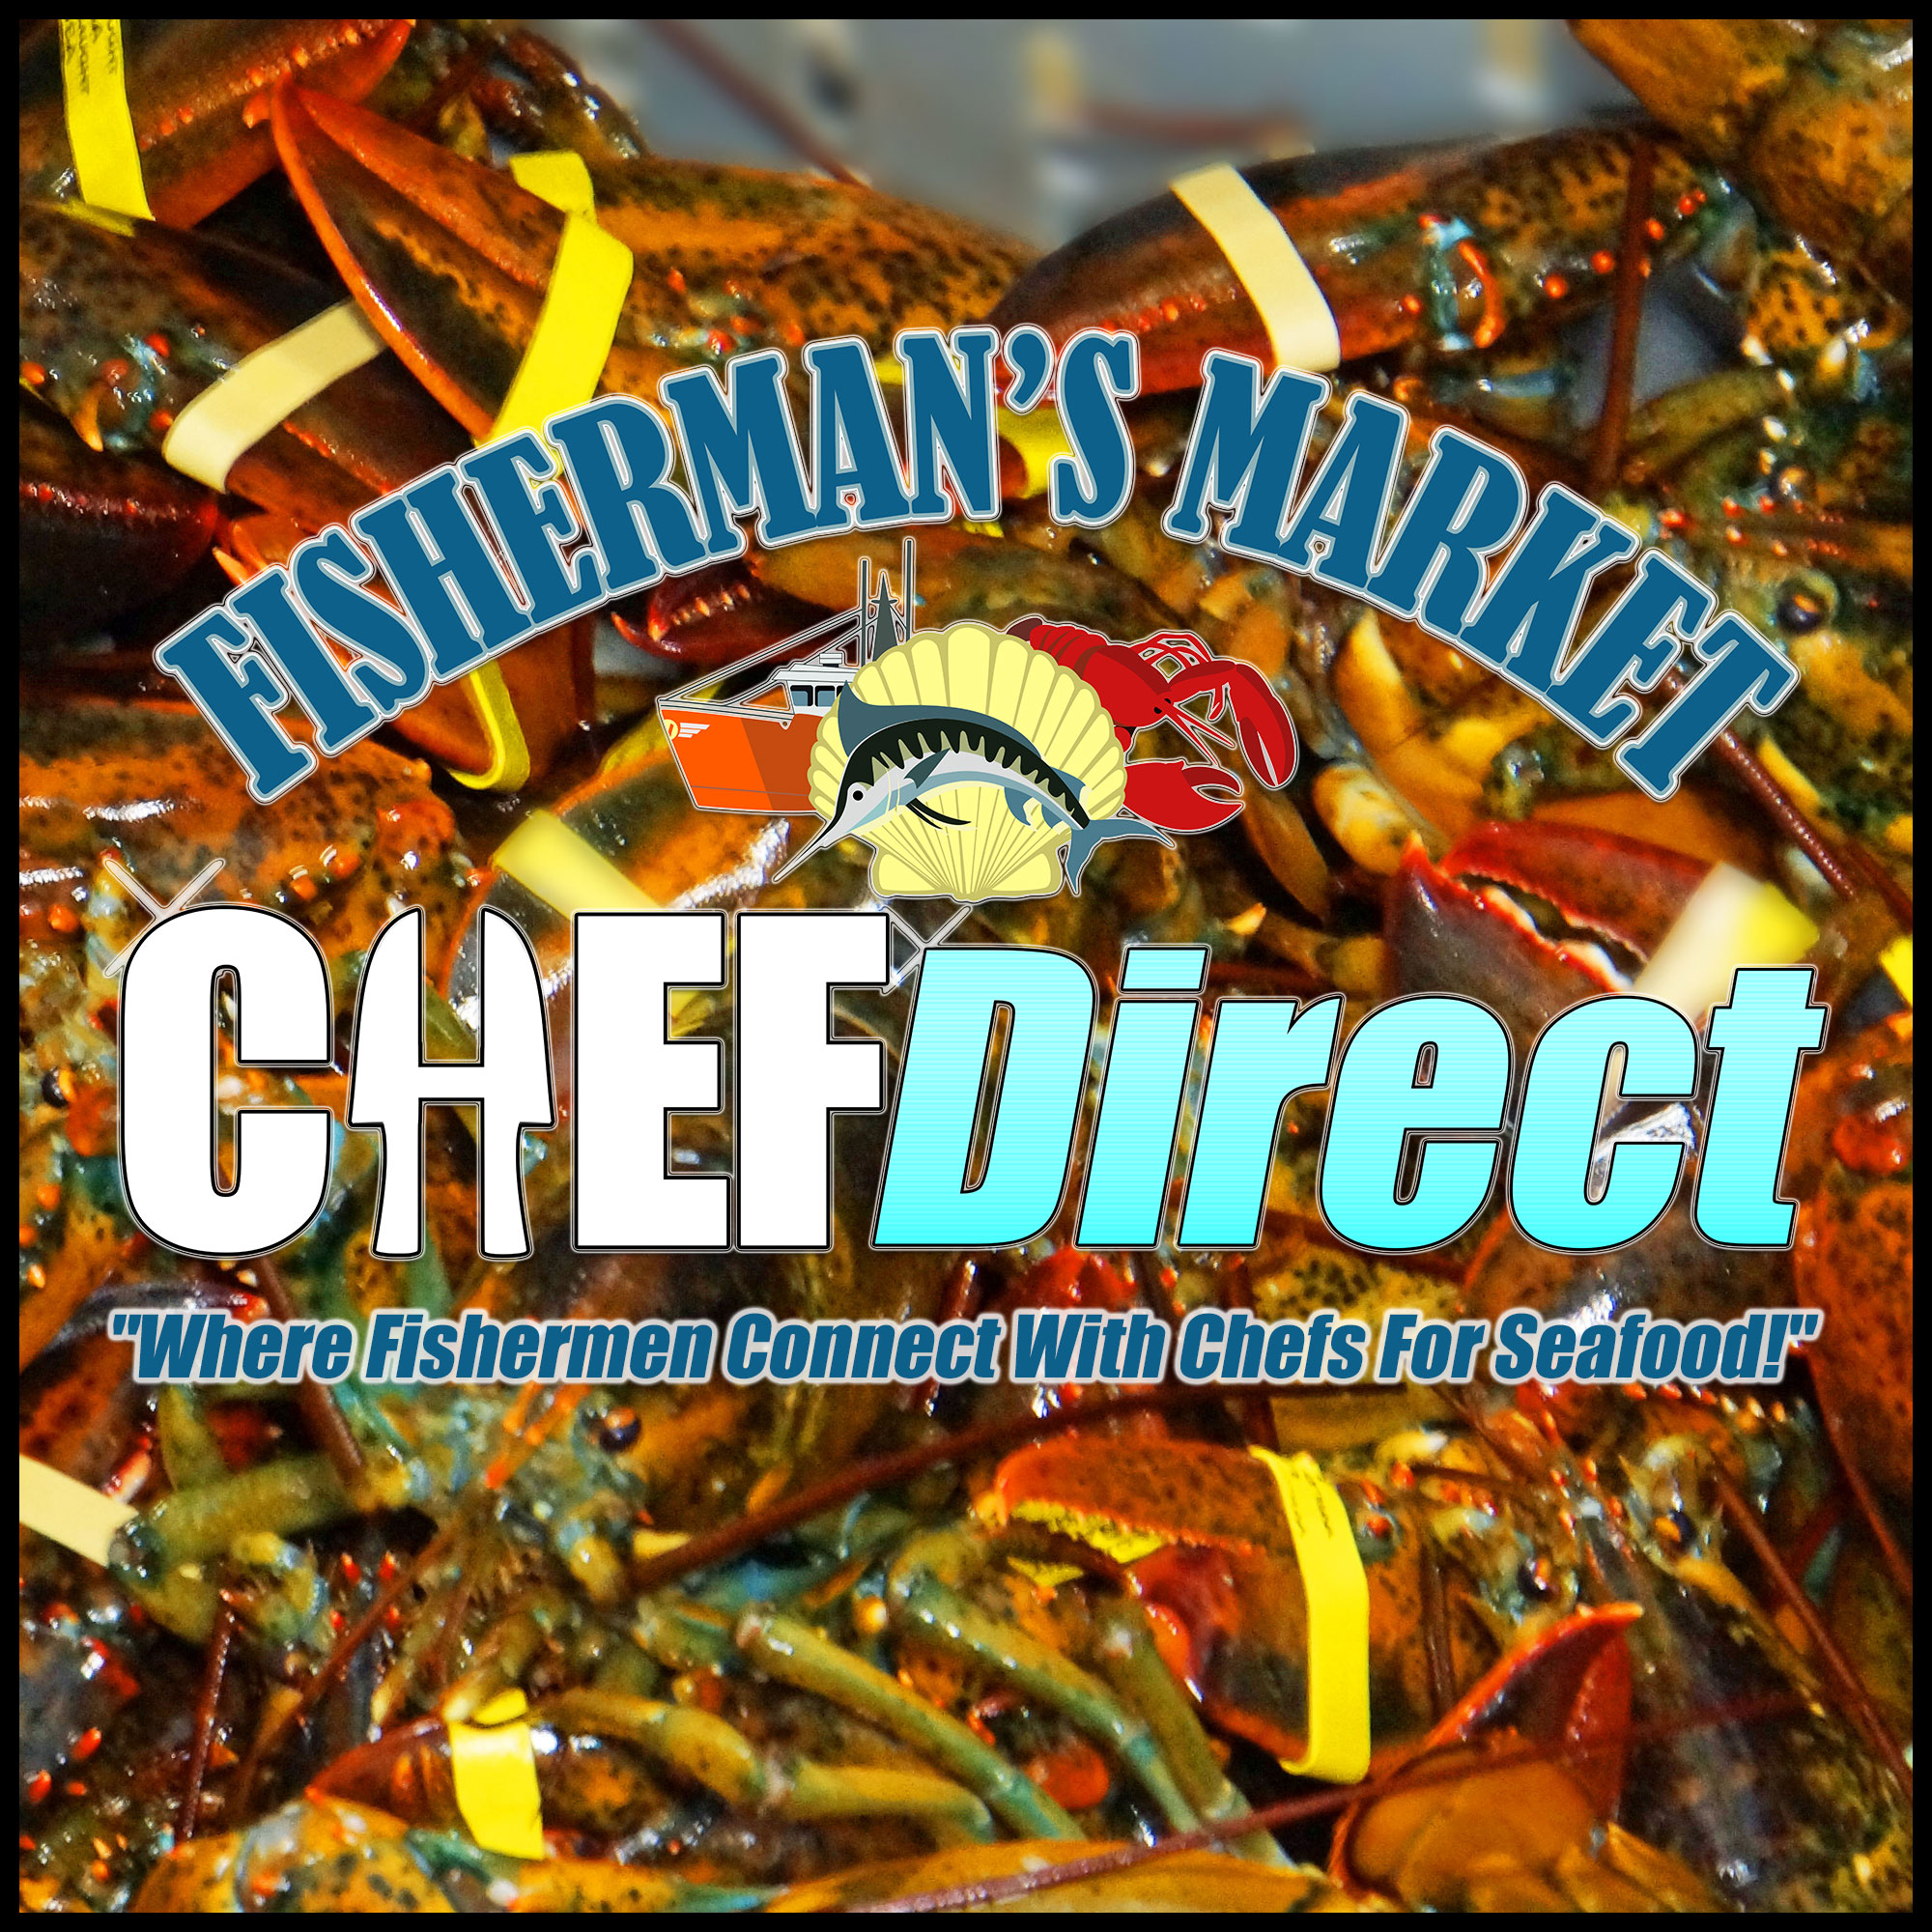 CHEF Direct by Fisherman's Market